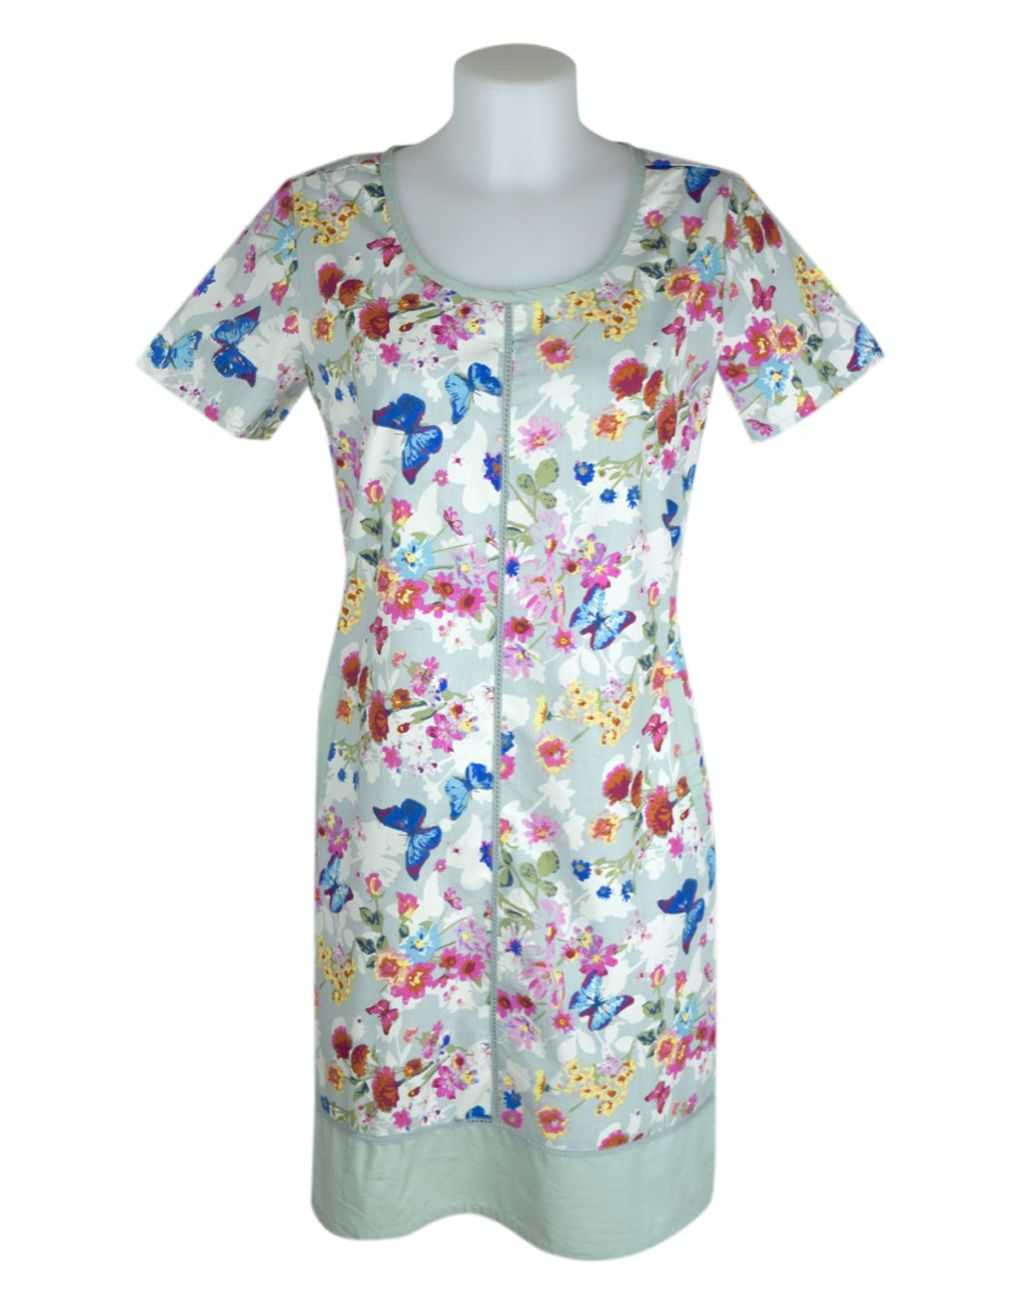 Alice Collins Jenna Dress Floral Butterfly 16 XL